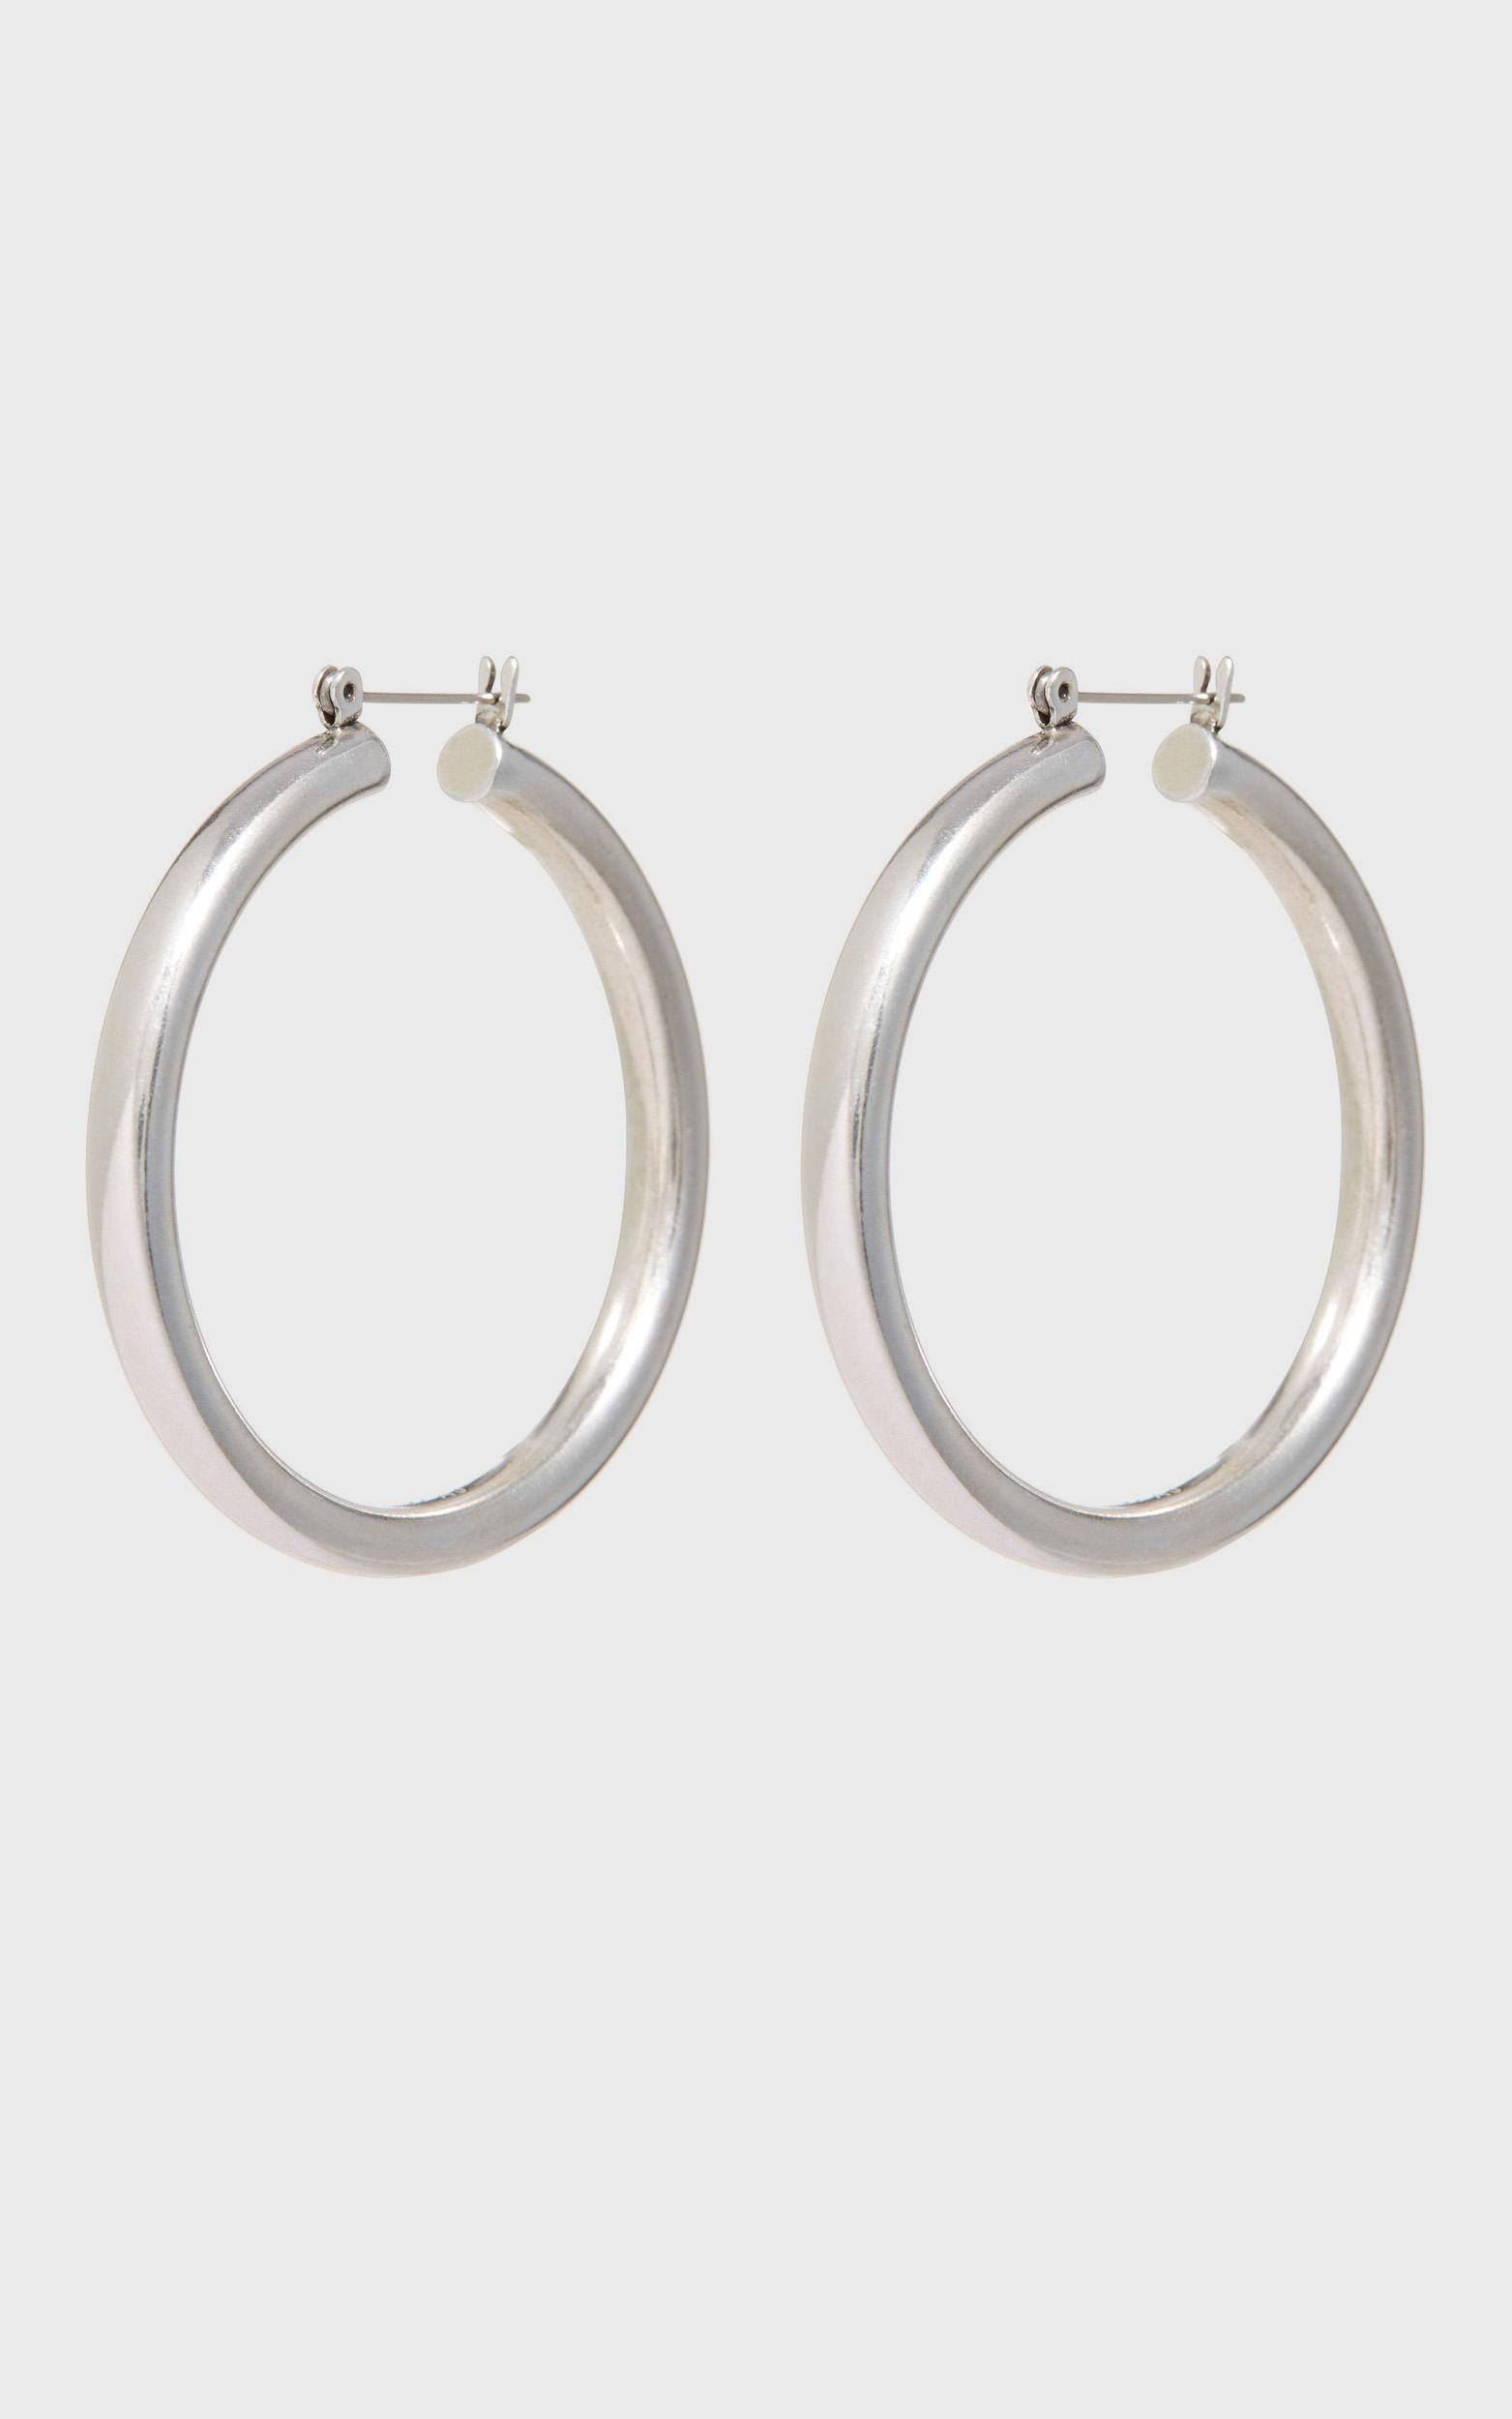 Luv Aj - The Amalfi Tube Hoops in Silver, Silver, hi-res image number null